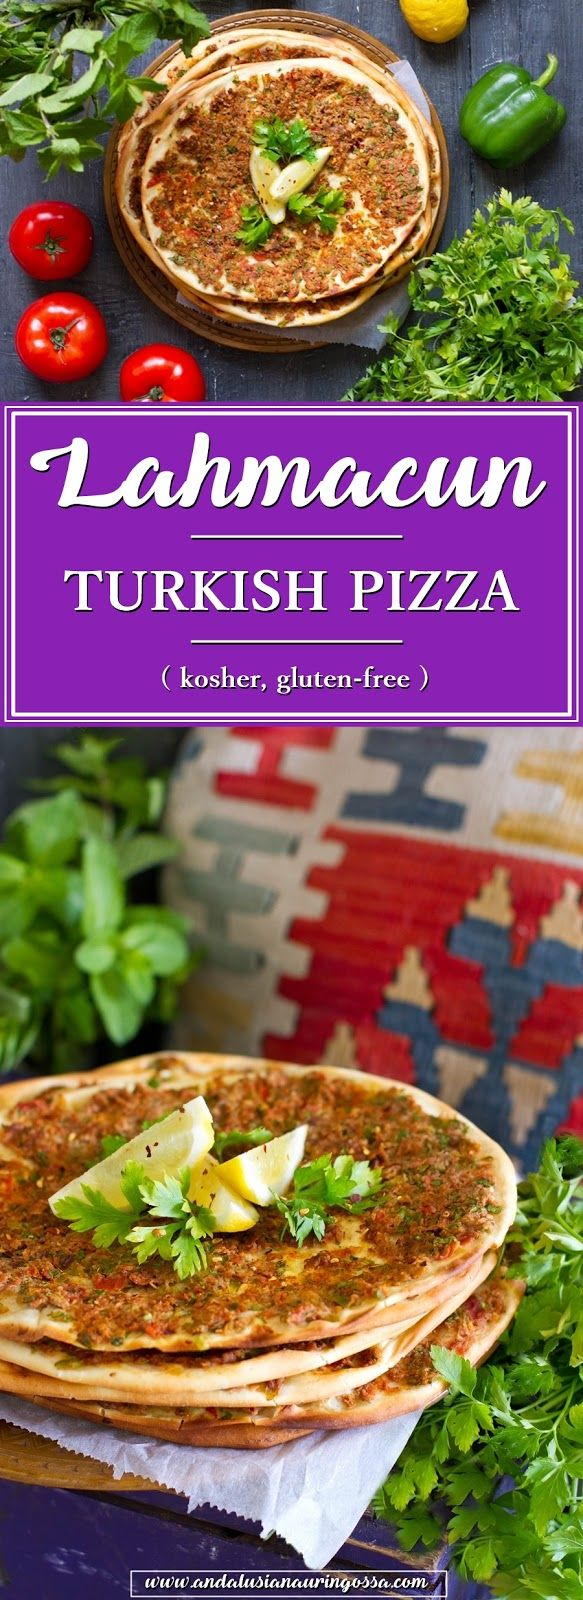 Lahmacun is Turkish pizza and transports taste buds instantly to Istanbul. Ahhhh!  * * *    Turkish food food blog travel blog food photography kosher gluten-free meze